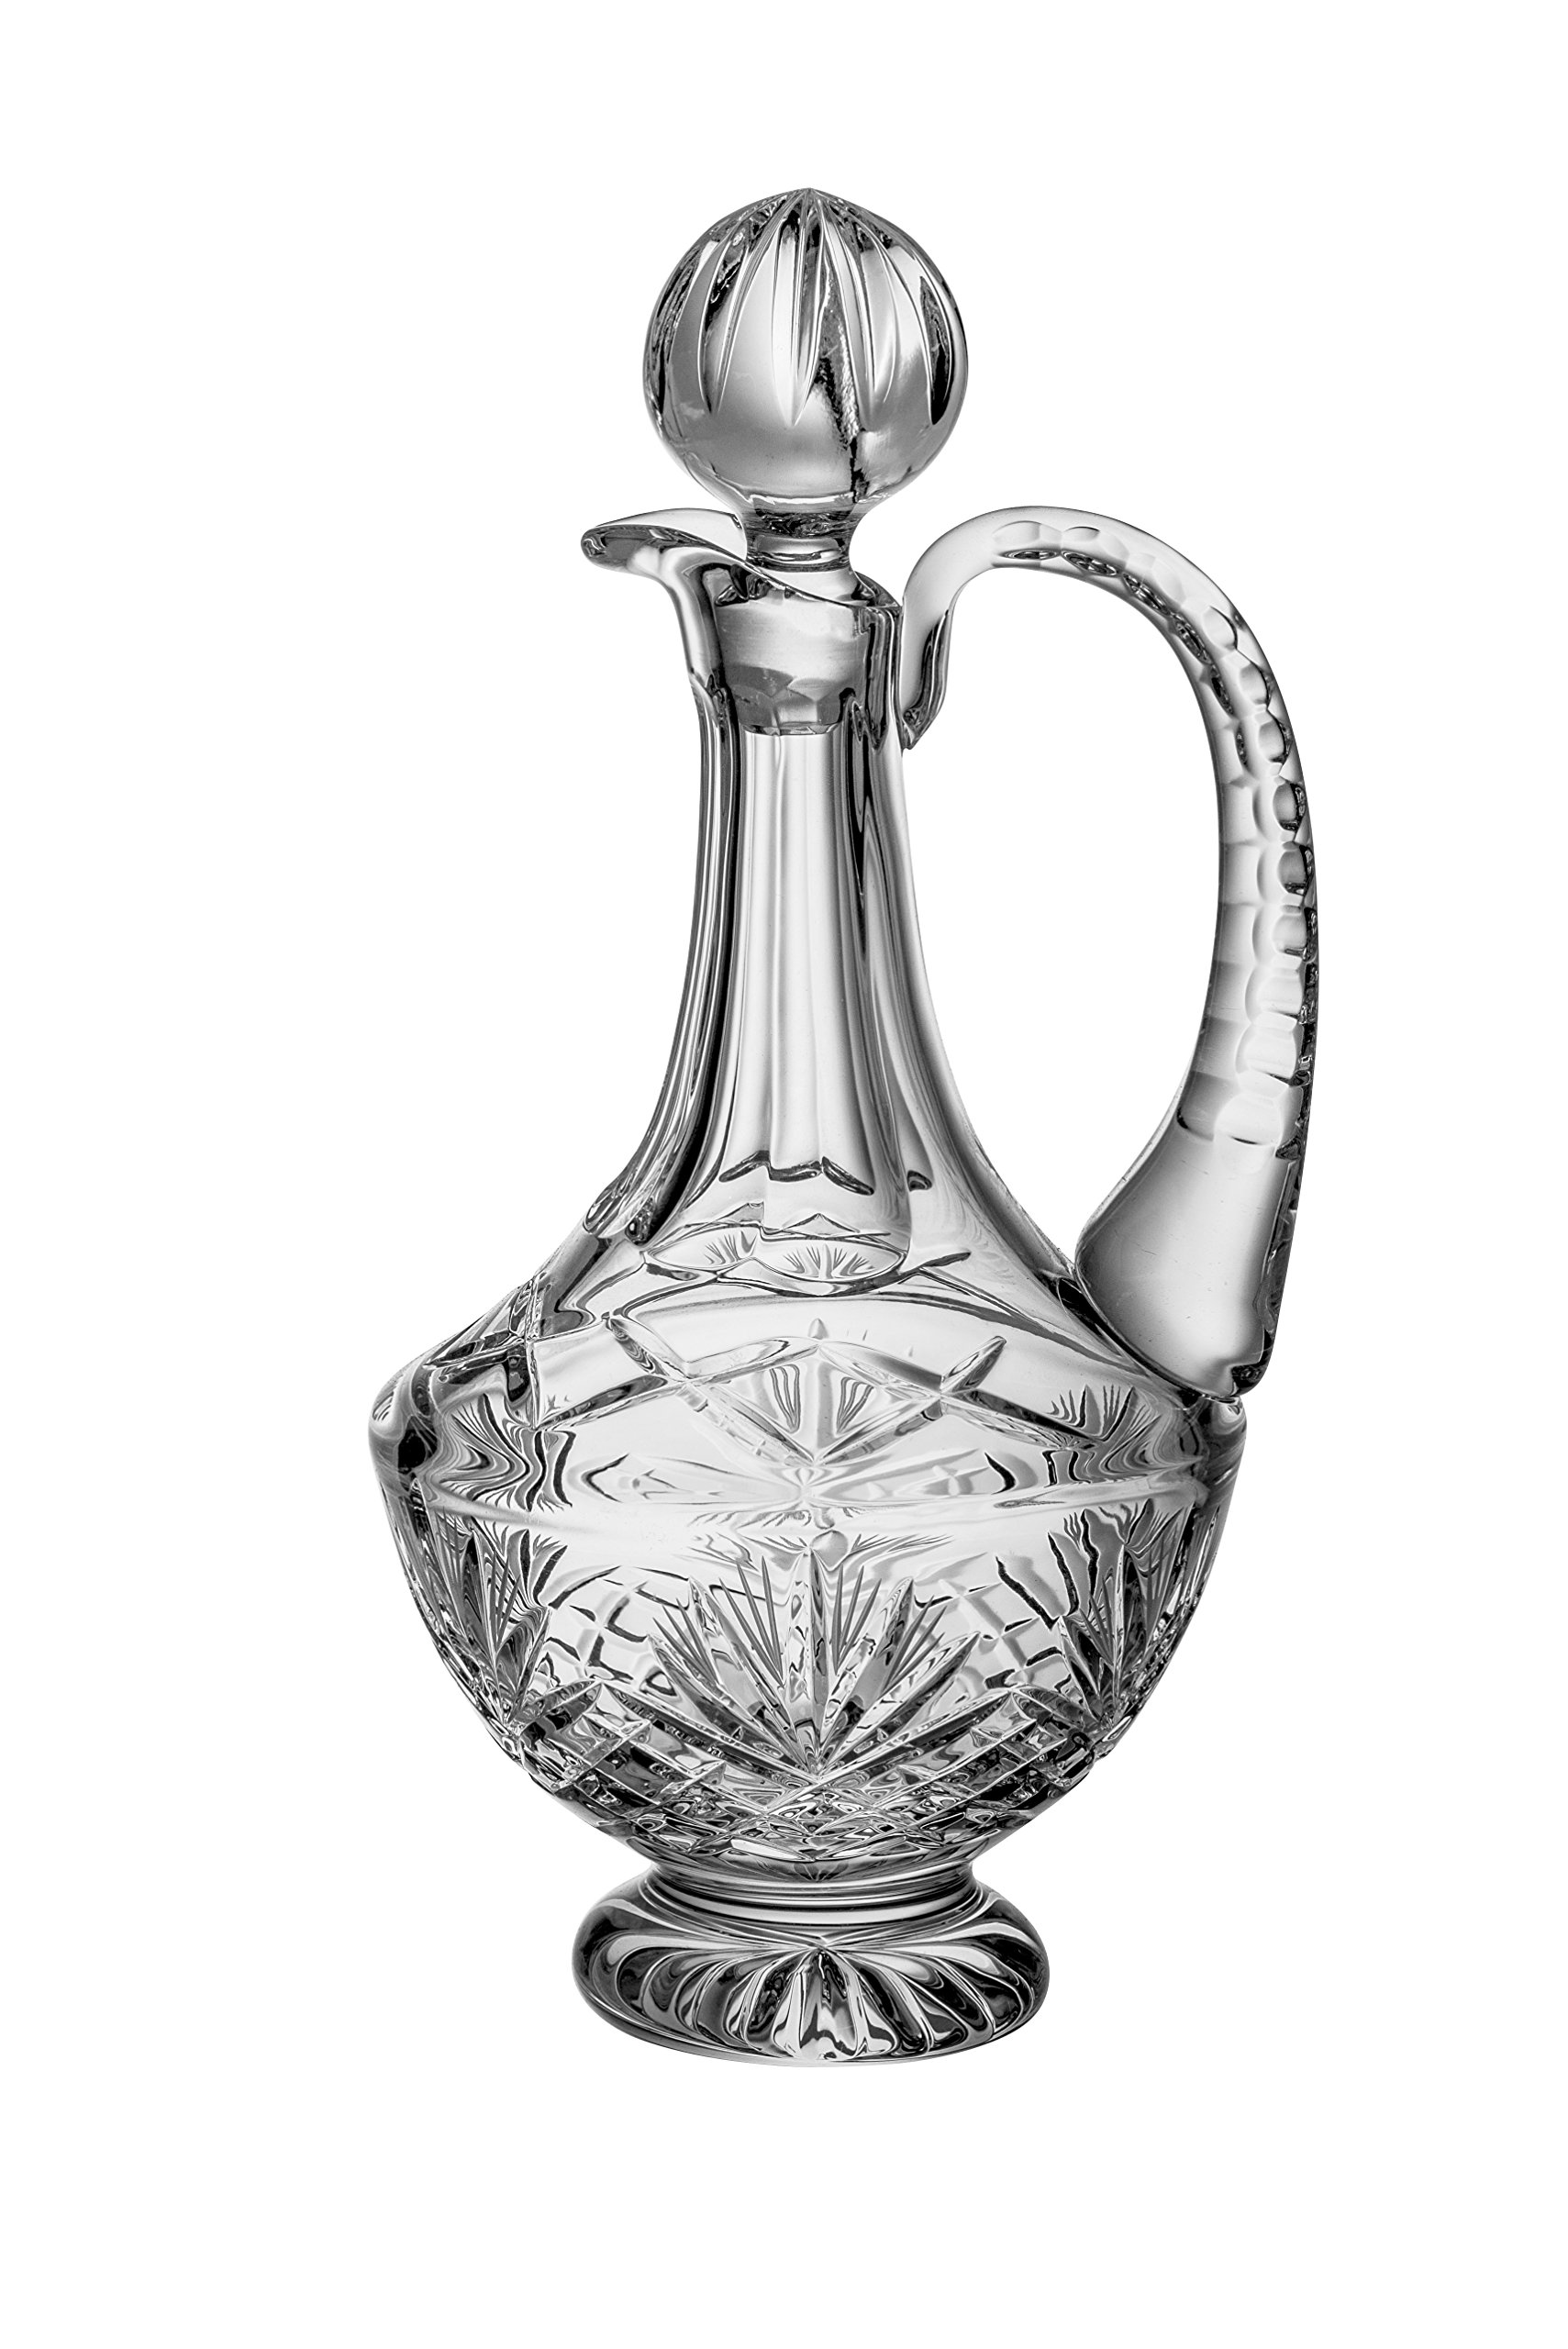 Barski - Hand Cut - Mouth Blown - Crystal - Footed Decanter - With Handle - Majestic Design - 38 oz. - Made in Europe